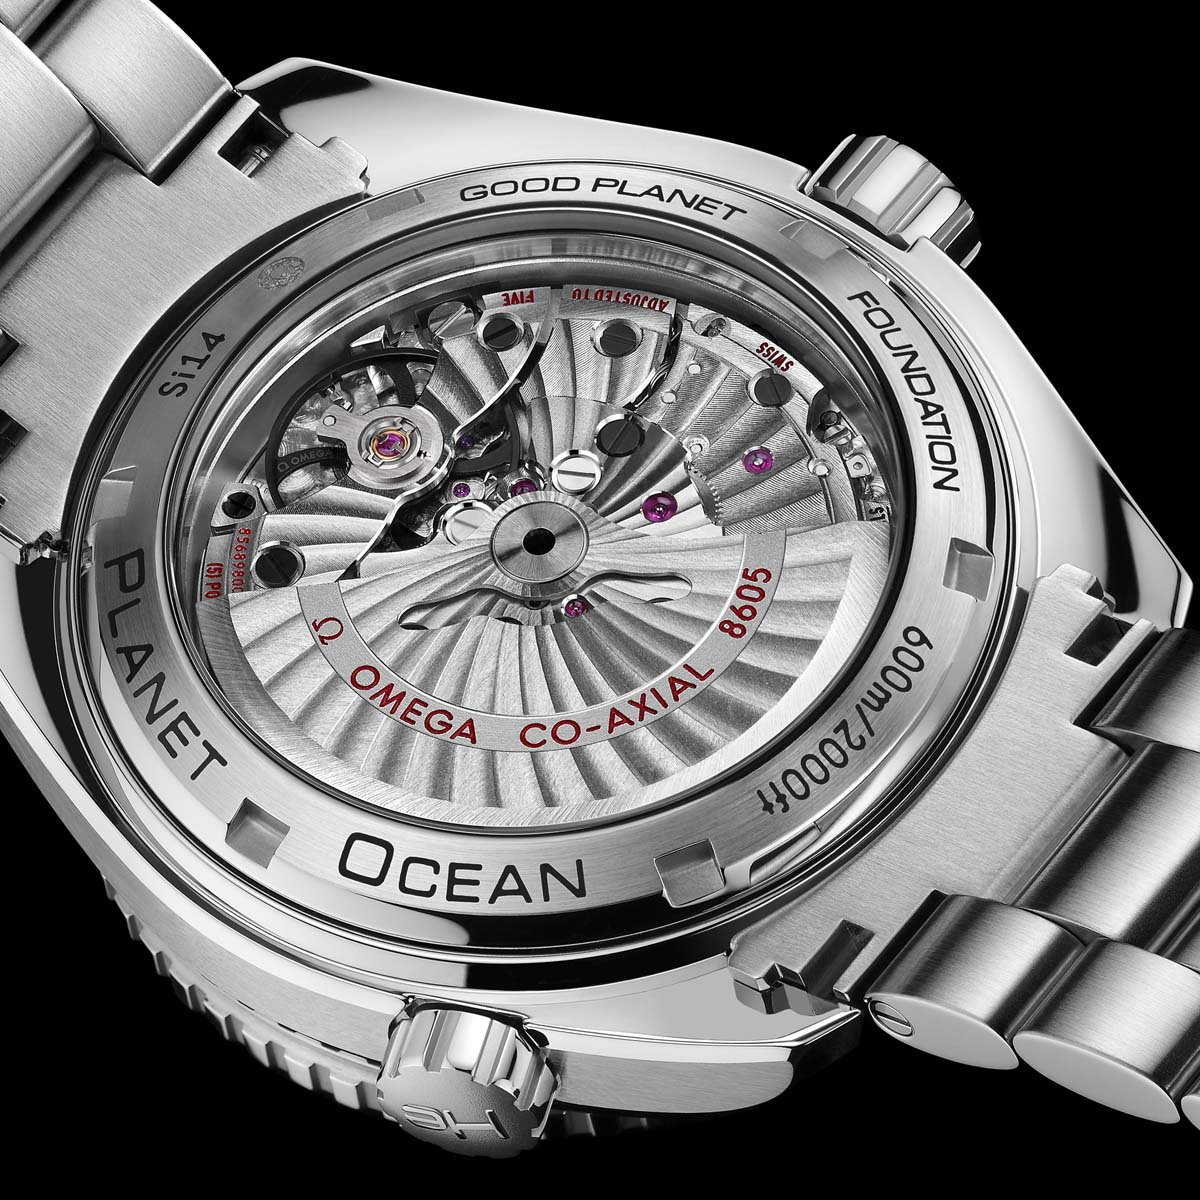 La Cote des Montres : Photo - Omega Seamaster Planet Ocean GMT 600M GoodPlanet